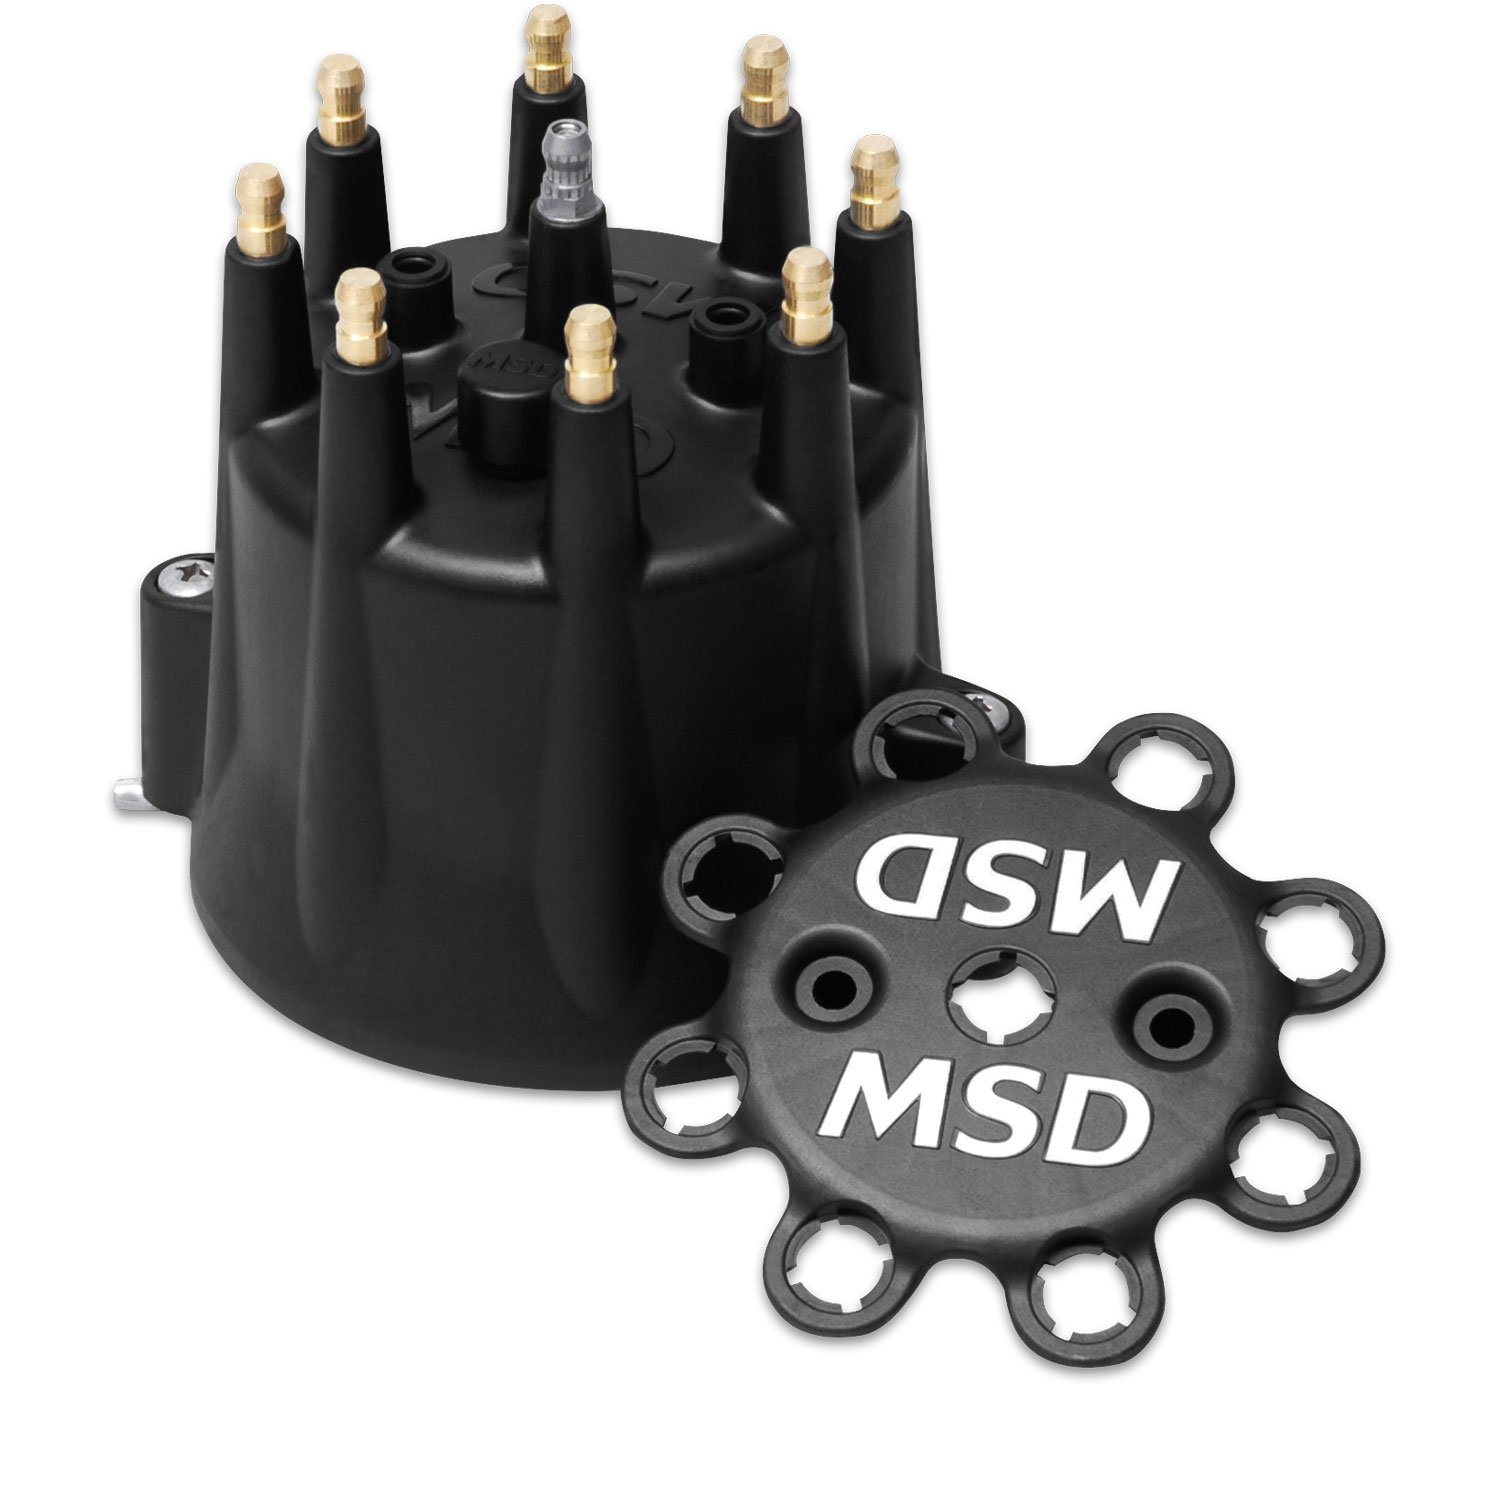 Black Distributor Cap for Chevy V8, HEI, Retainer